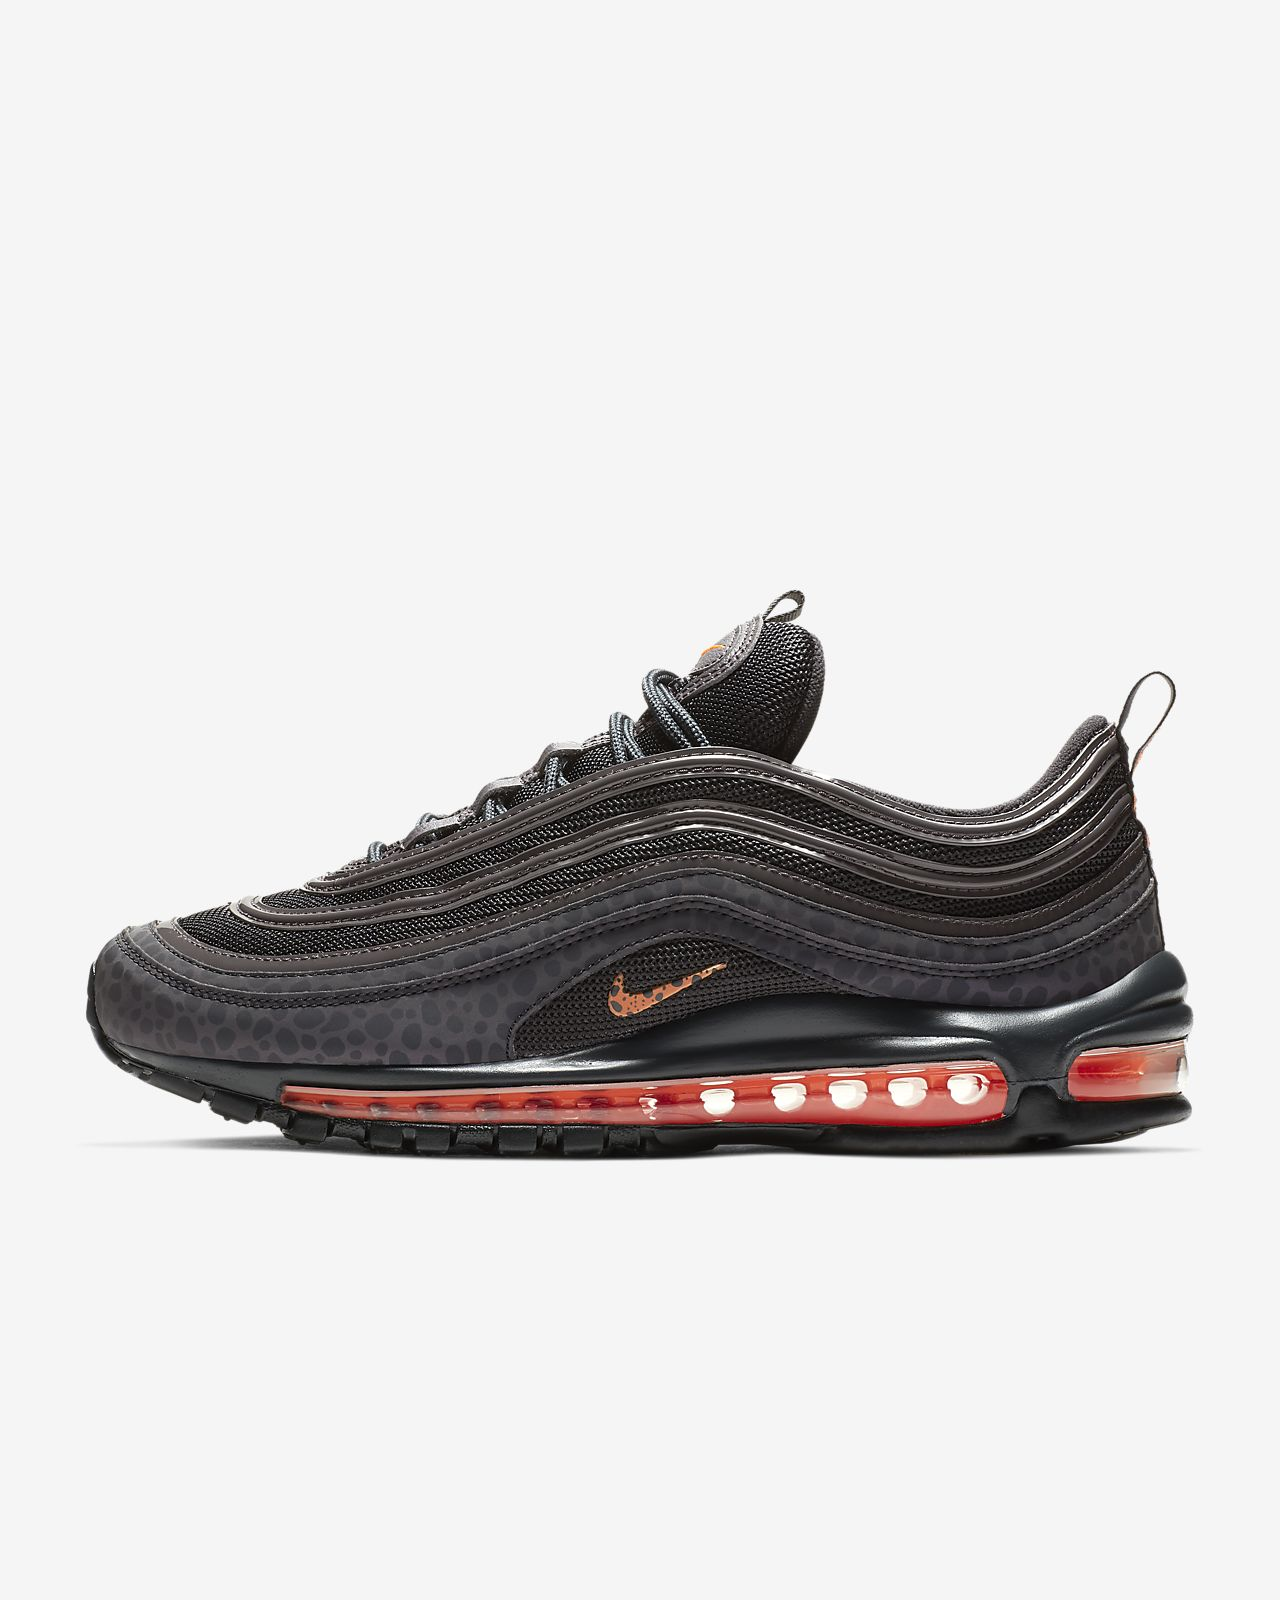 530af3128ddd Nike Air Max 97 SE Reflective Men s Shoe. Nike.com GB